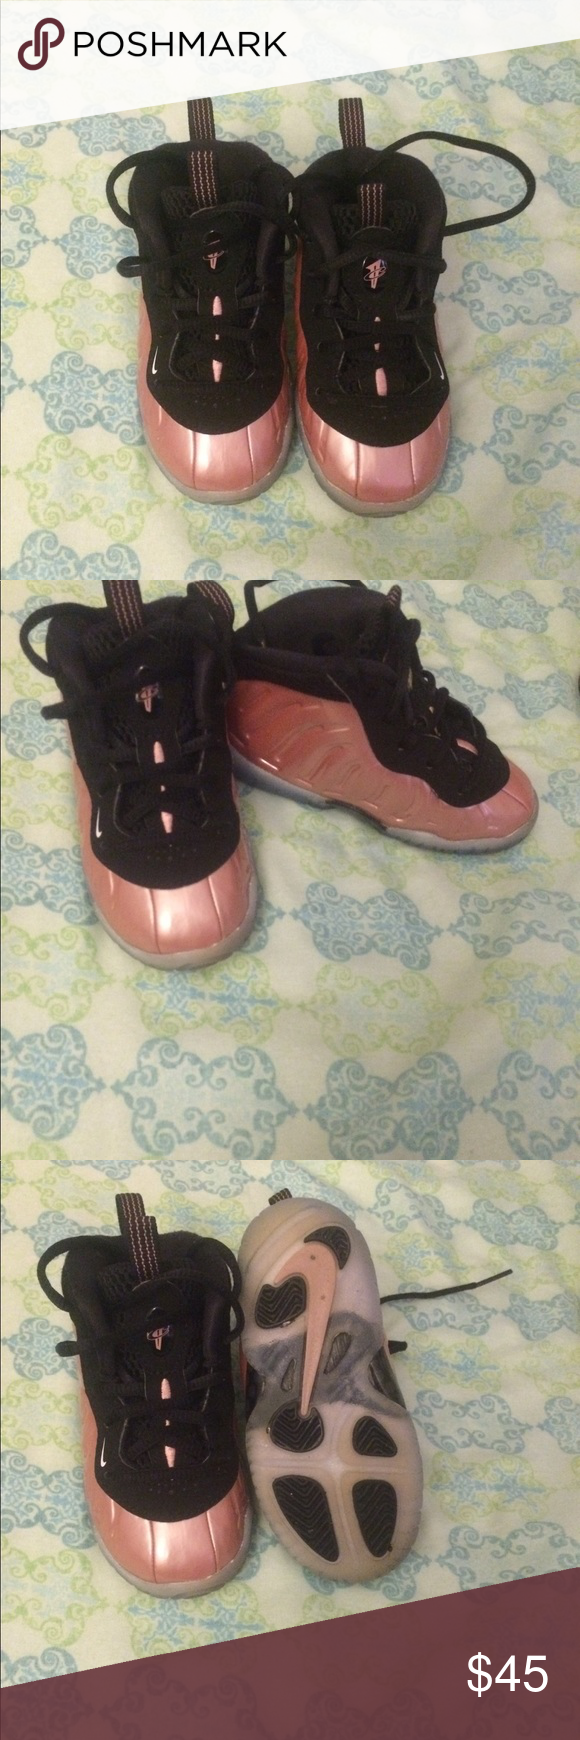 10fb1c7b7c6 Nike Foamposite Size 6c (toddler) Rose Gold gently worn Nike Shoes Sneakers